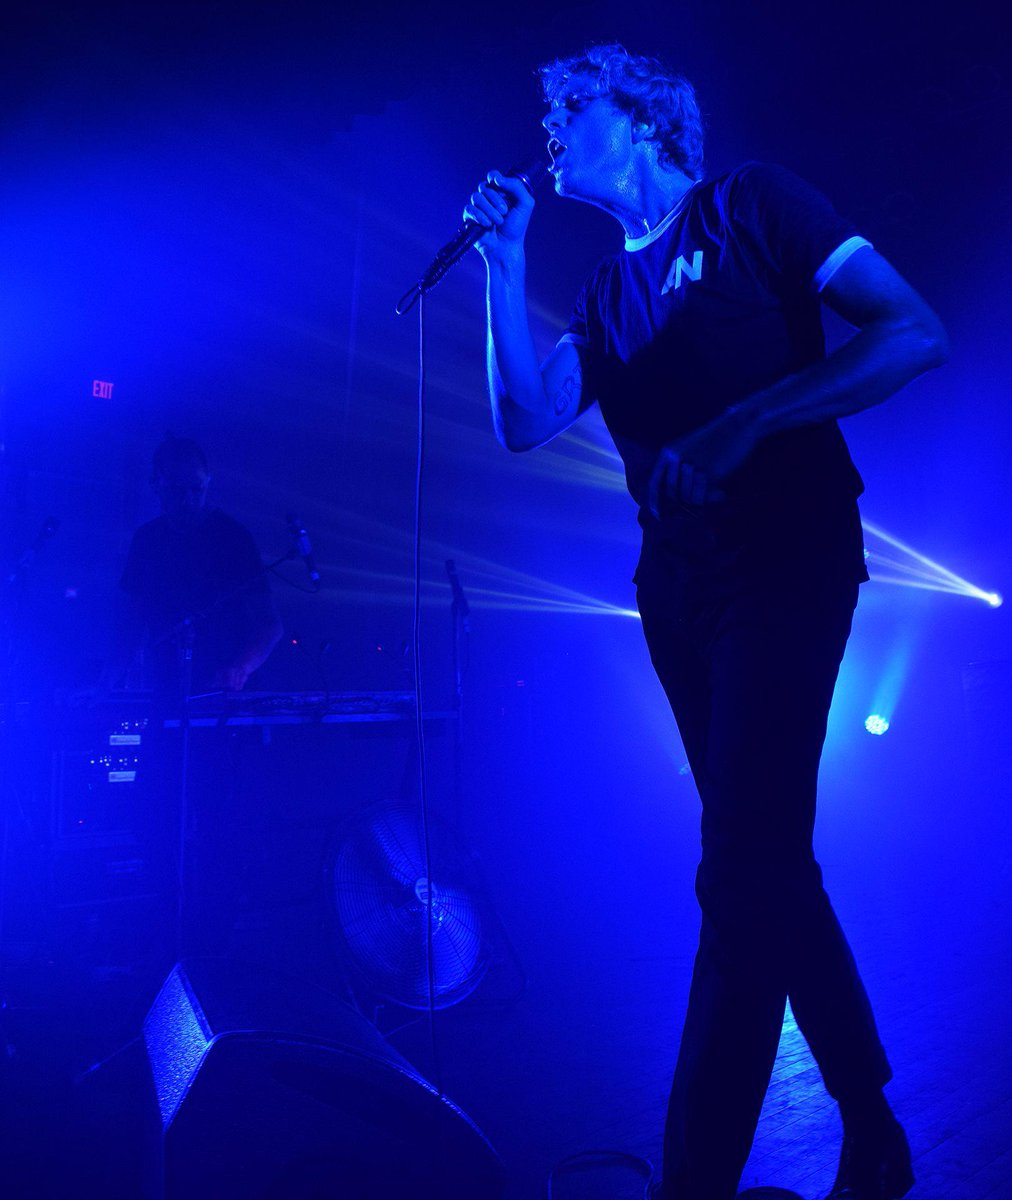 We were with @awolnation last night! Great show! #AWOL2015 #RUNtour http://t.co/8SahM7oUtv